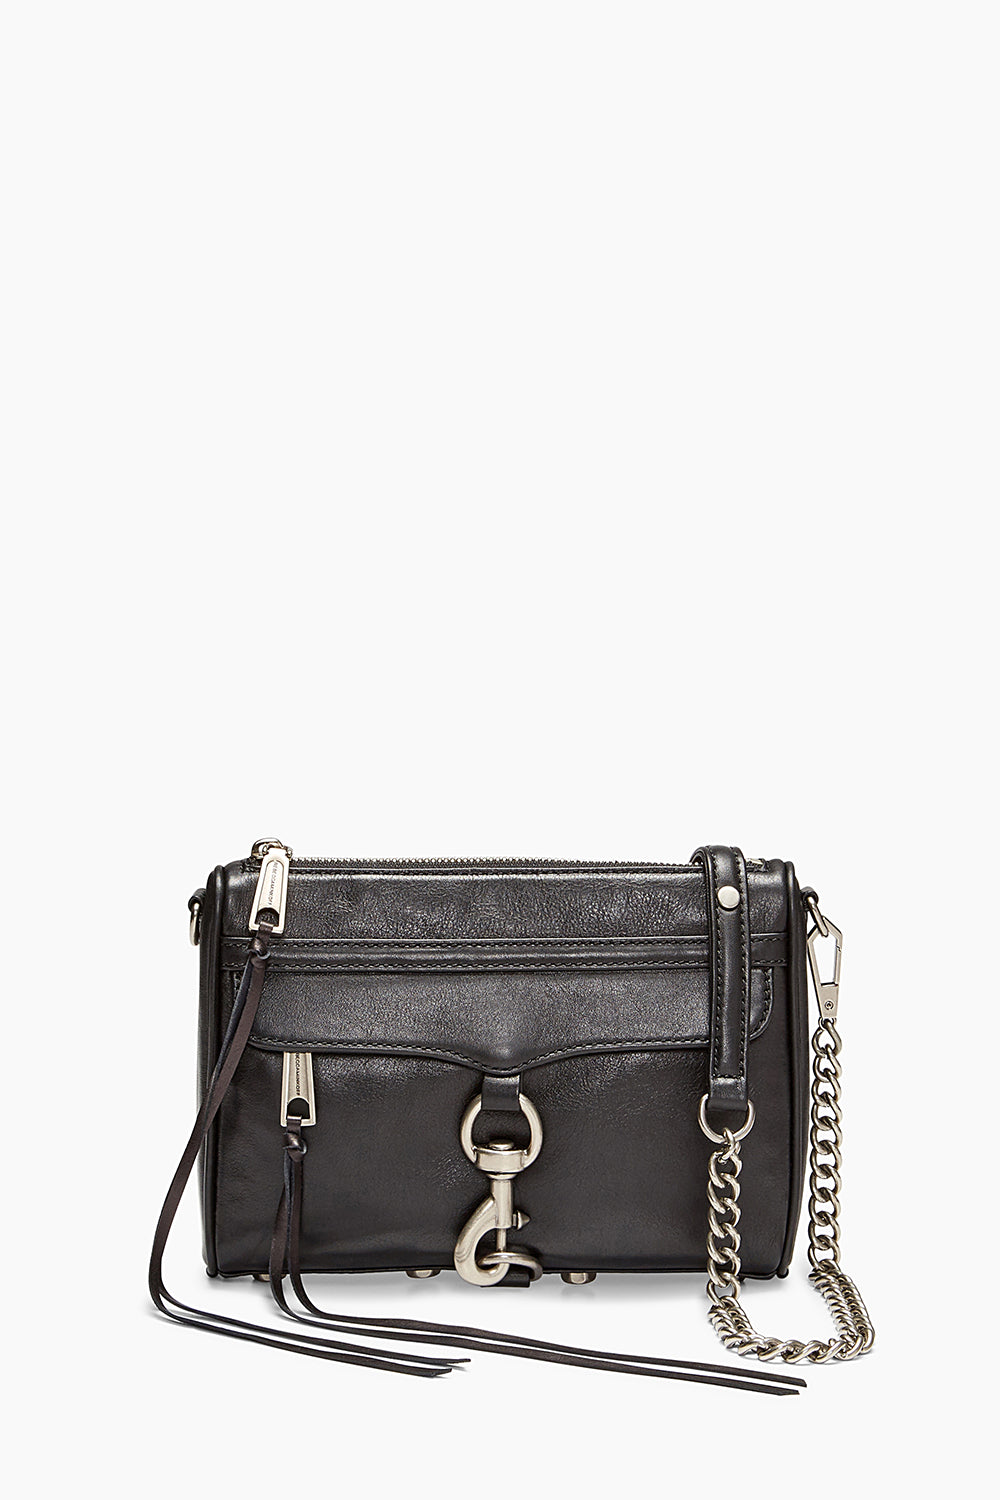 Black Leather Mini M.A.C. Crossbody Bag